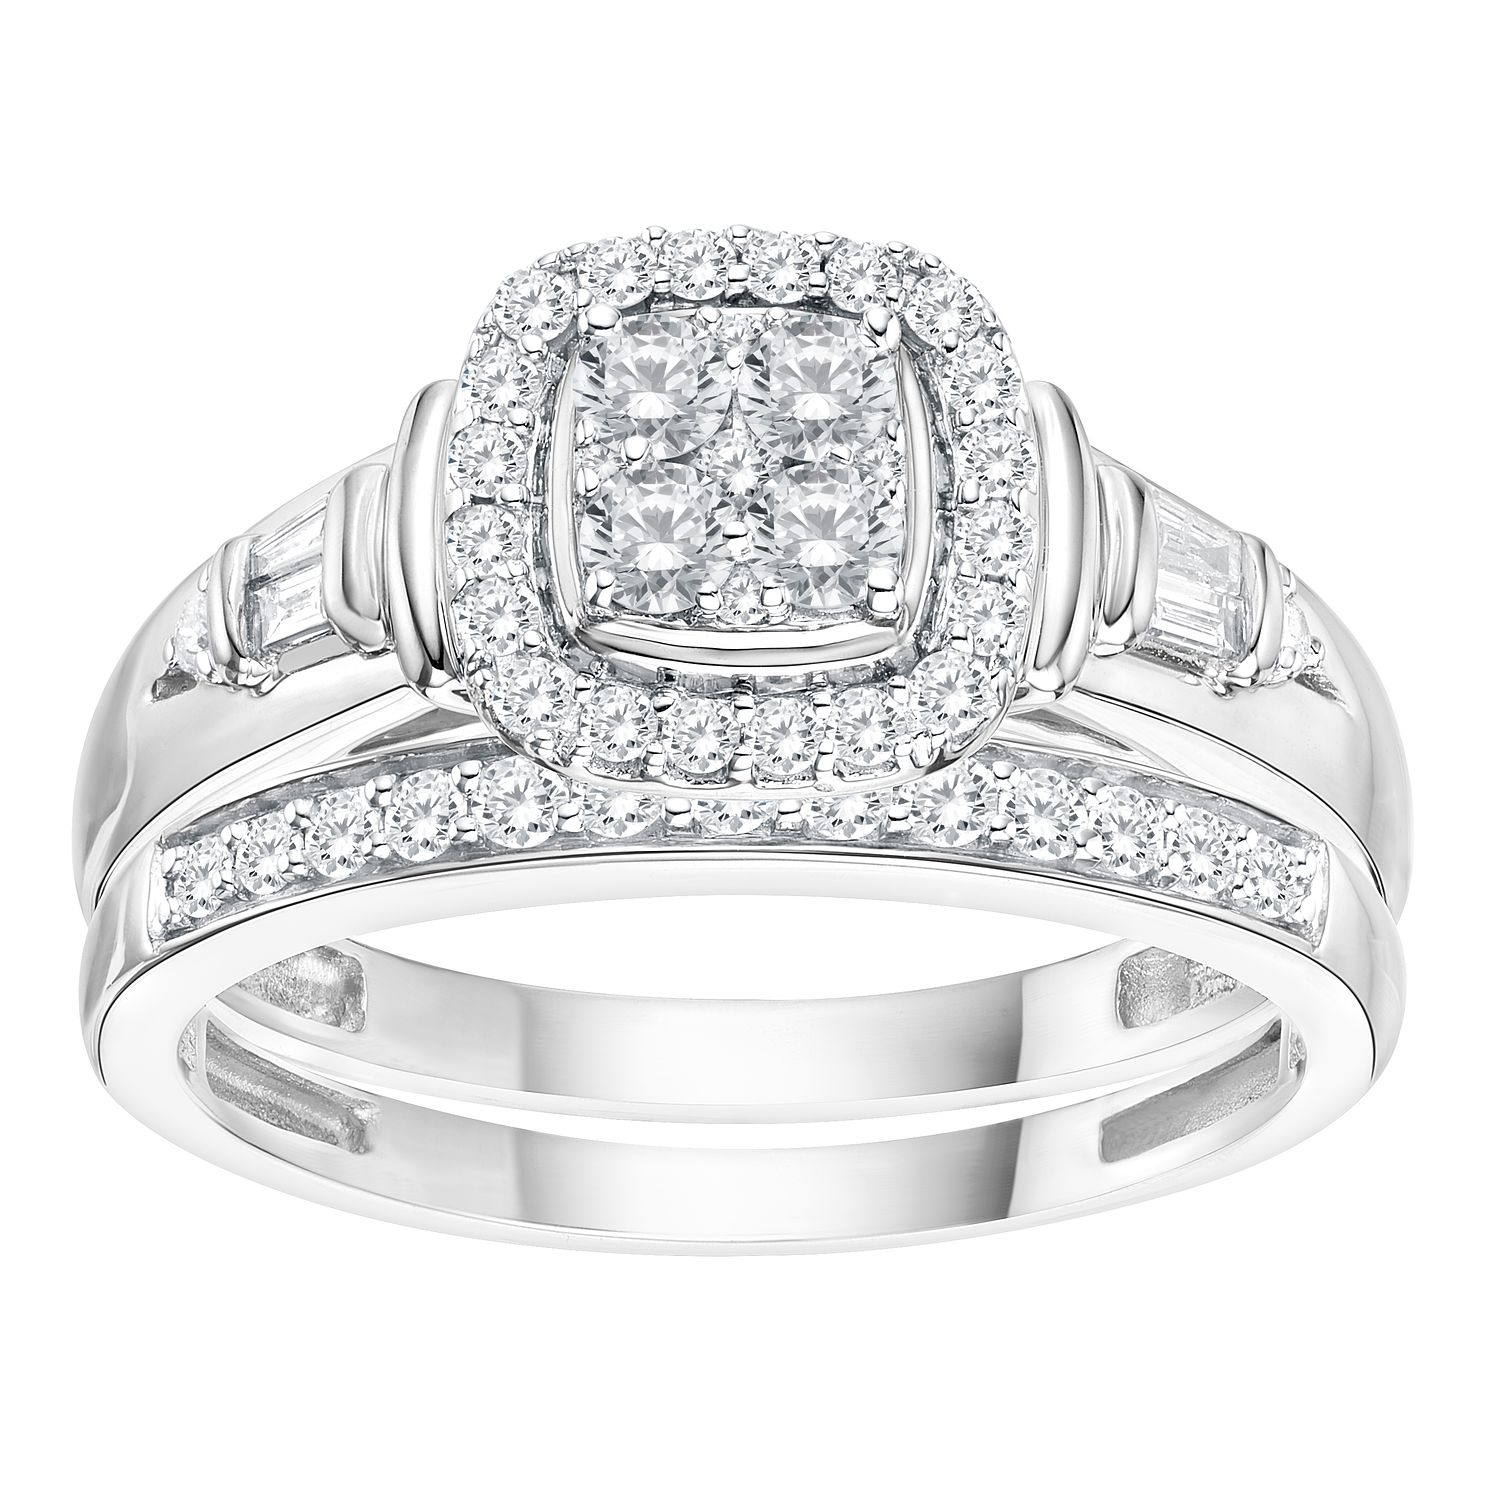 jewellery category ernest bands material jones webstore product ring set occasion sets channel s point men number band wedding rings ladies l platinum diamond